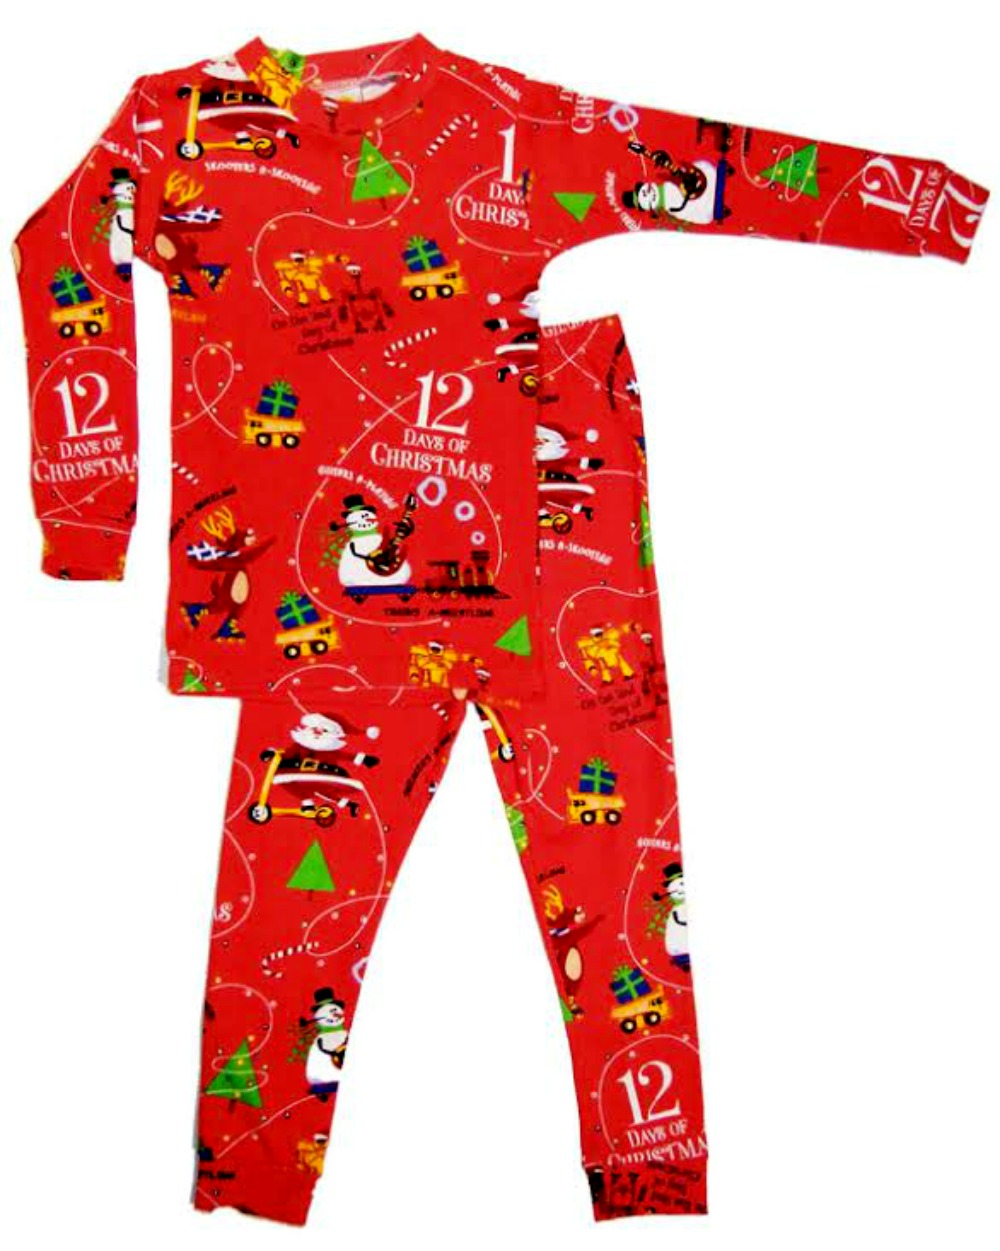 Holiday Pajamas. Make the season merry and bright with Christmas Pajamas from Kohl's! Featuring all the designs and styles that will put you in a festive mood, our selection of Holiday Pajamas .